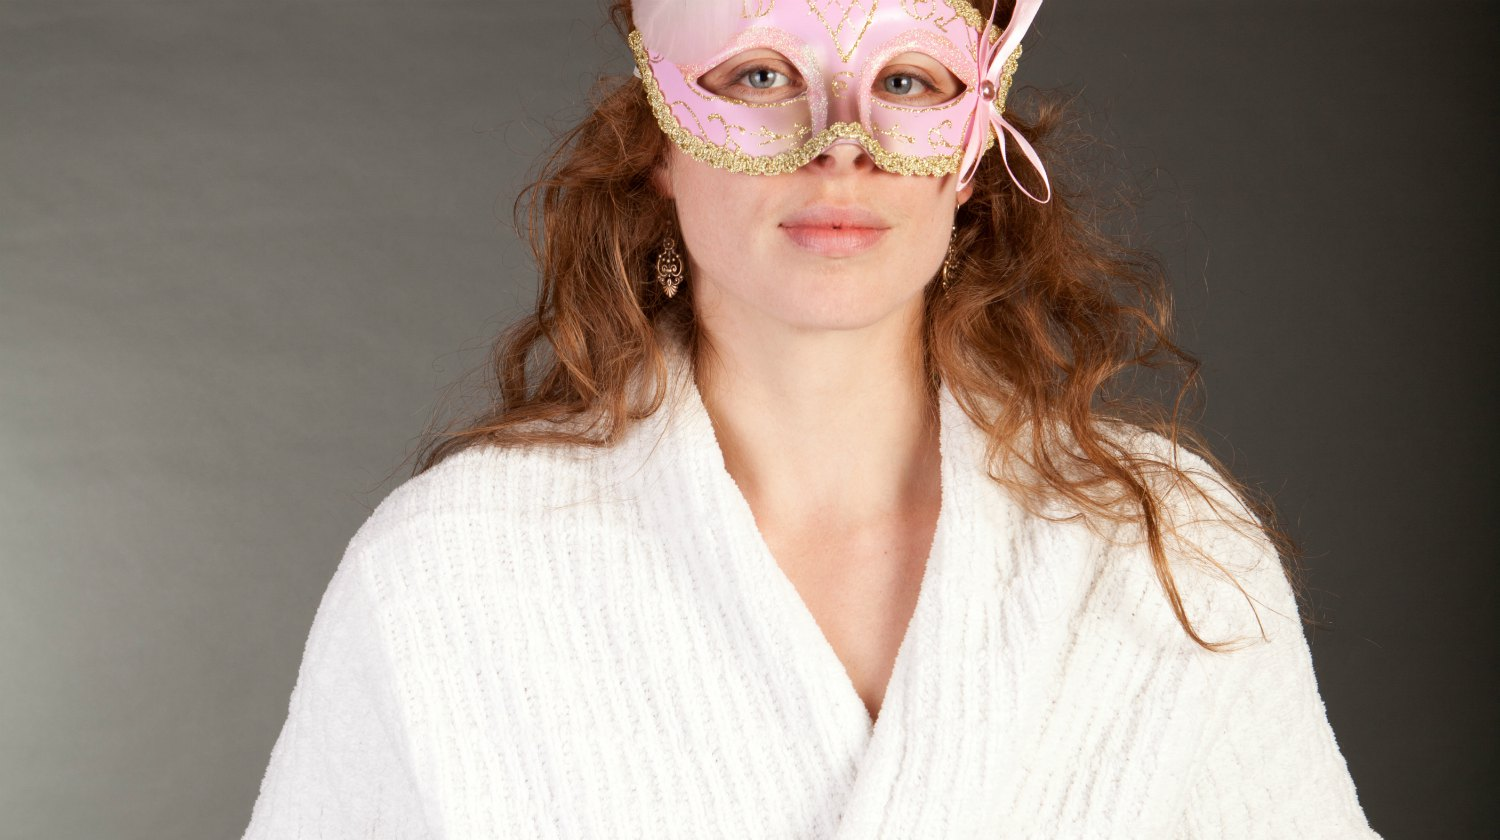 woman wearing pink carnival mask and white bathrobe | Last-Minute Bathrobe Halloween Costumes For An Effortless Evening | halloween costumes | funny last-minute costume ideas | Featured